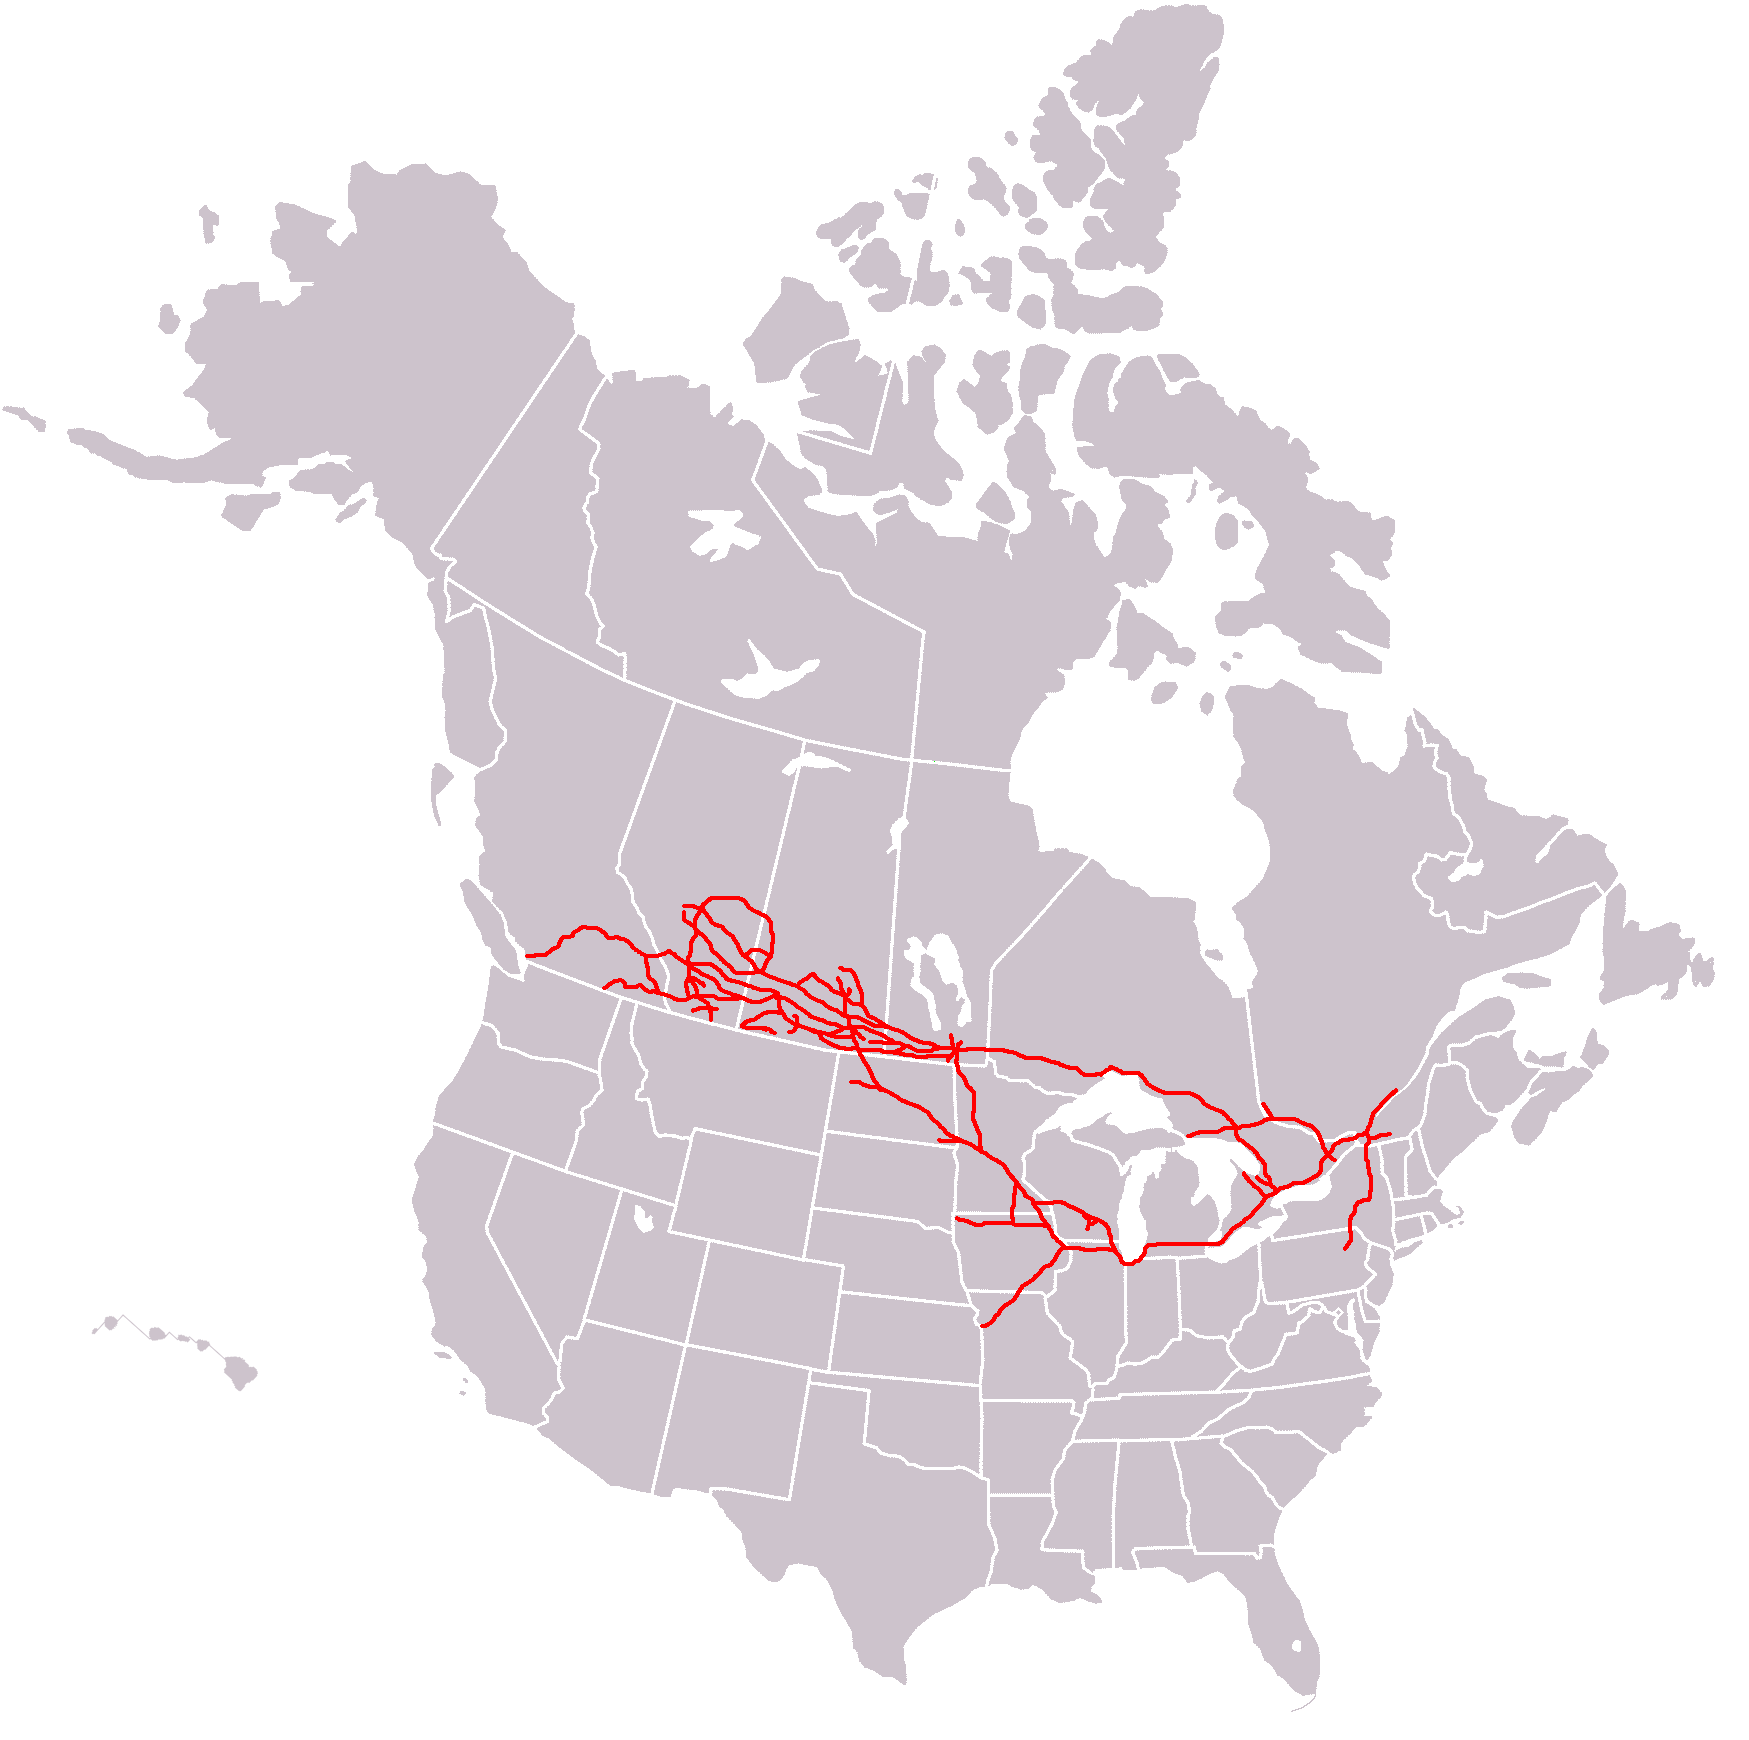 Canadian Pacific Railway - Wikipedia on chris brown canada, fortune canada, thank you canada, animals canada, whirlpool canada, we want you canada,